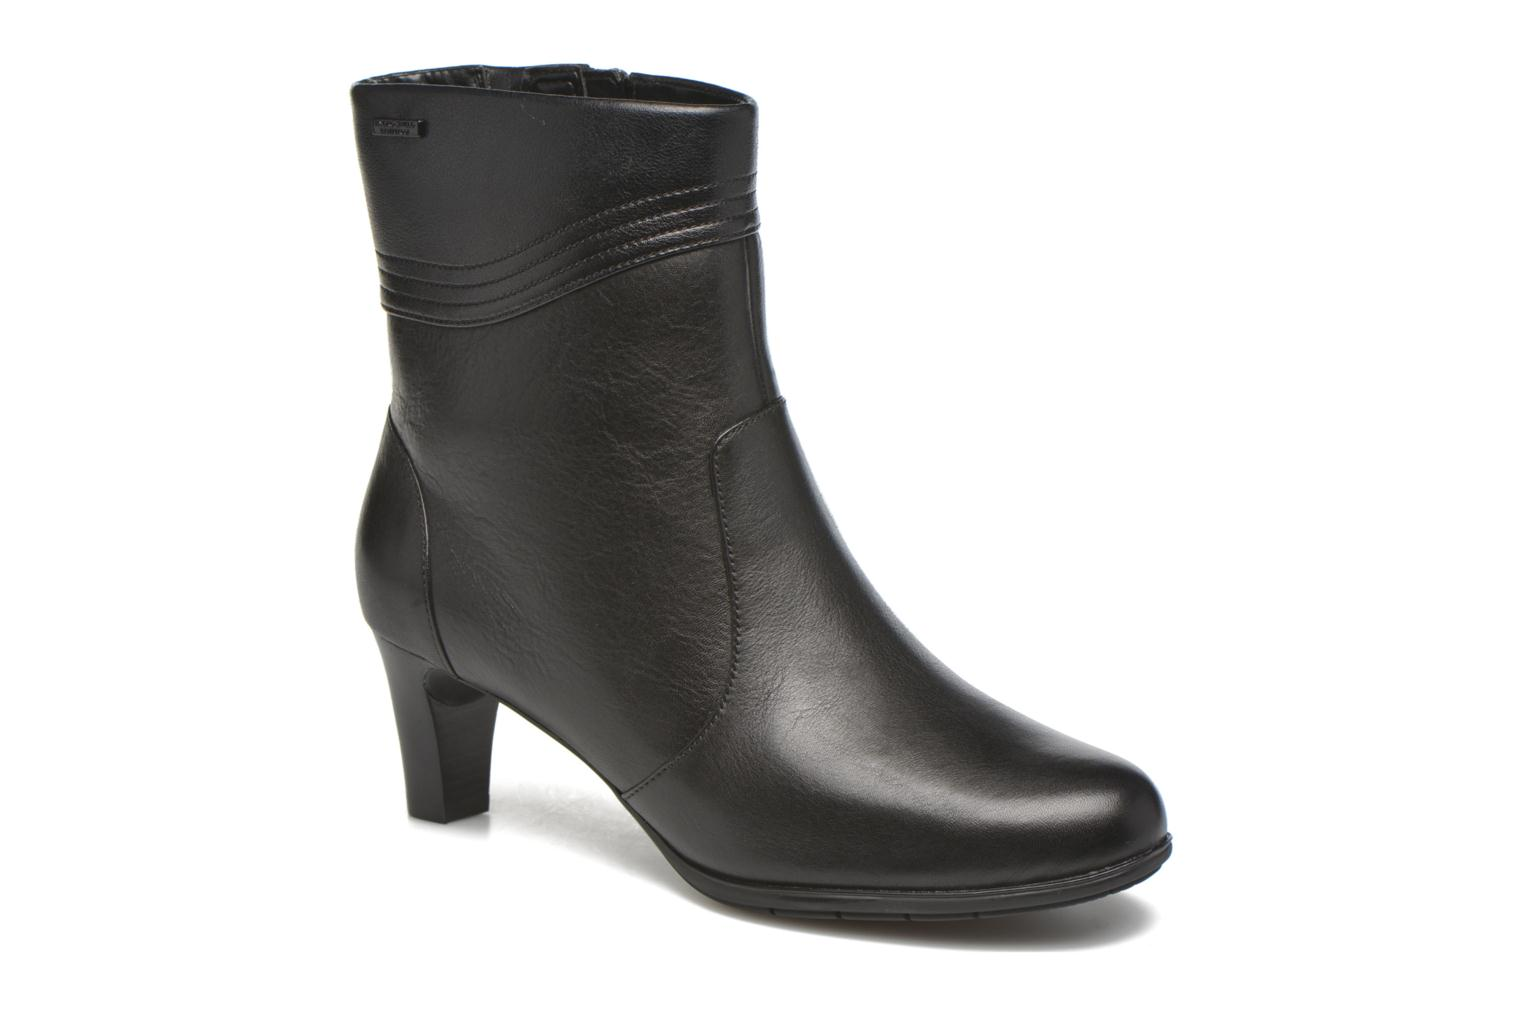 Melora Wave Bootie Black leather